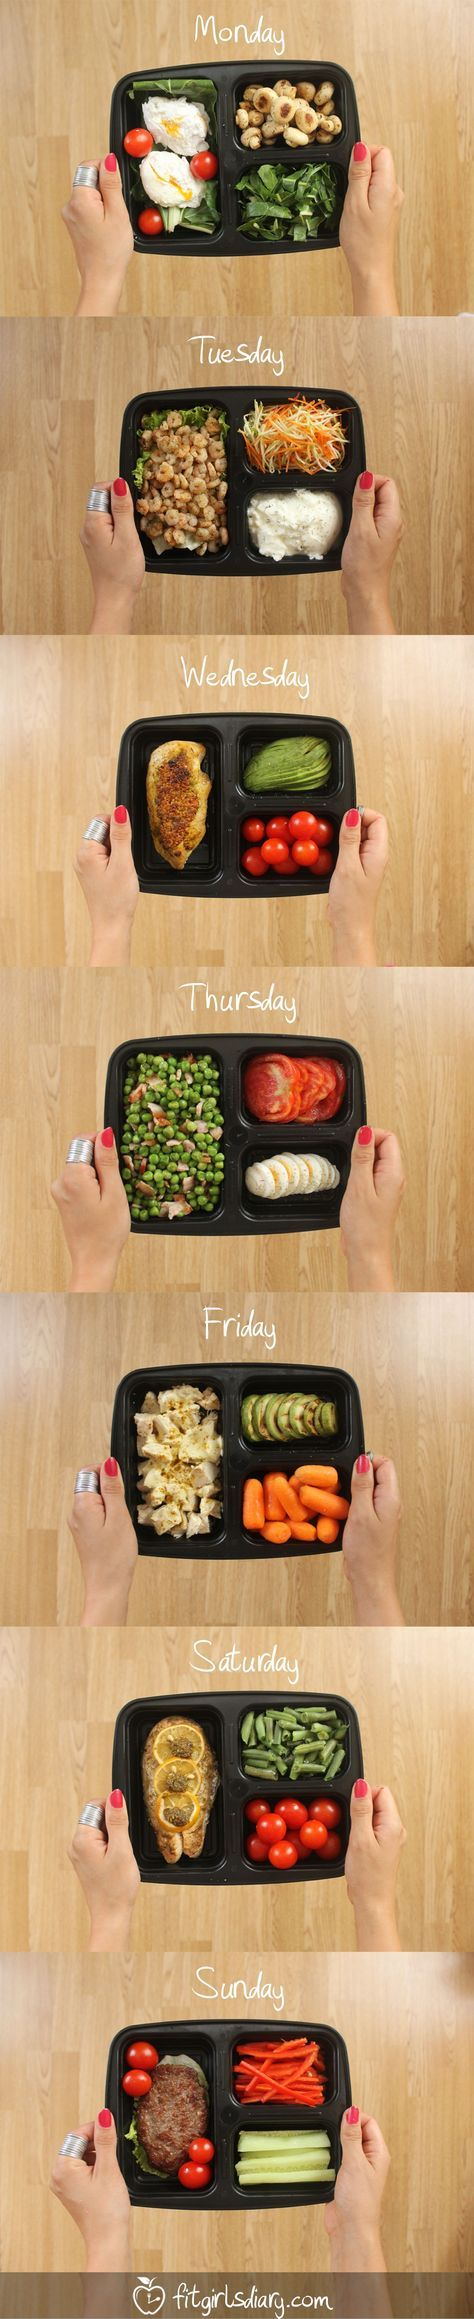 The menu of healthy and healthy food for 7 days for weight loss